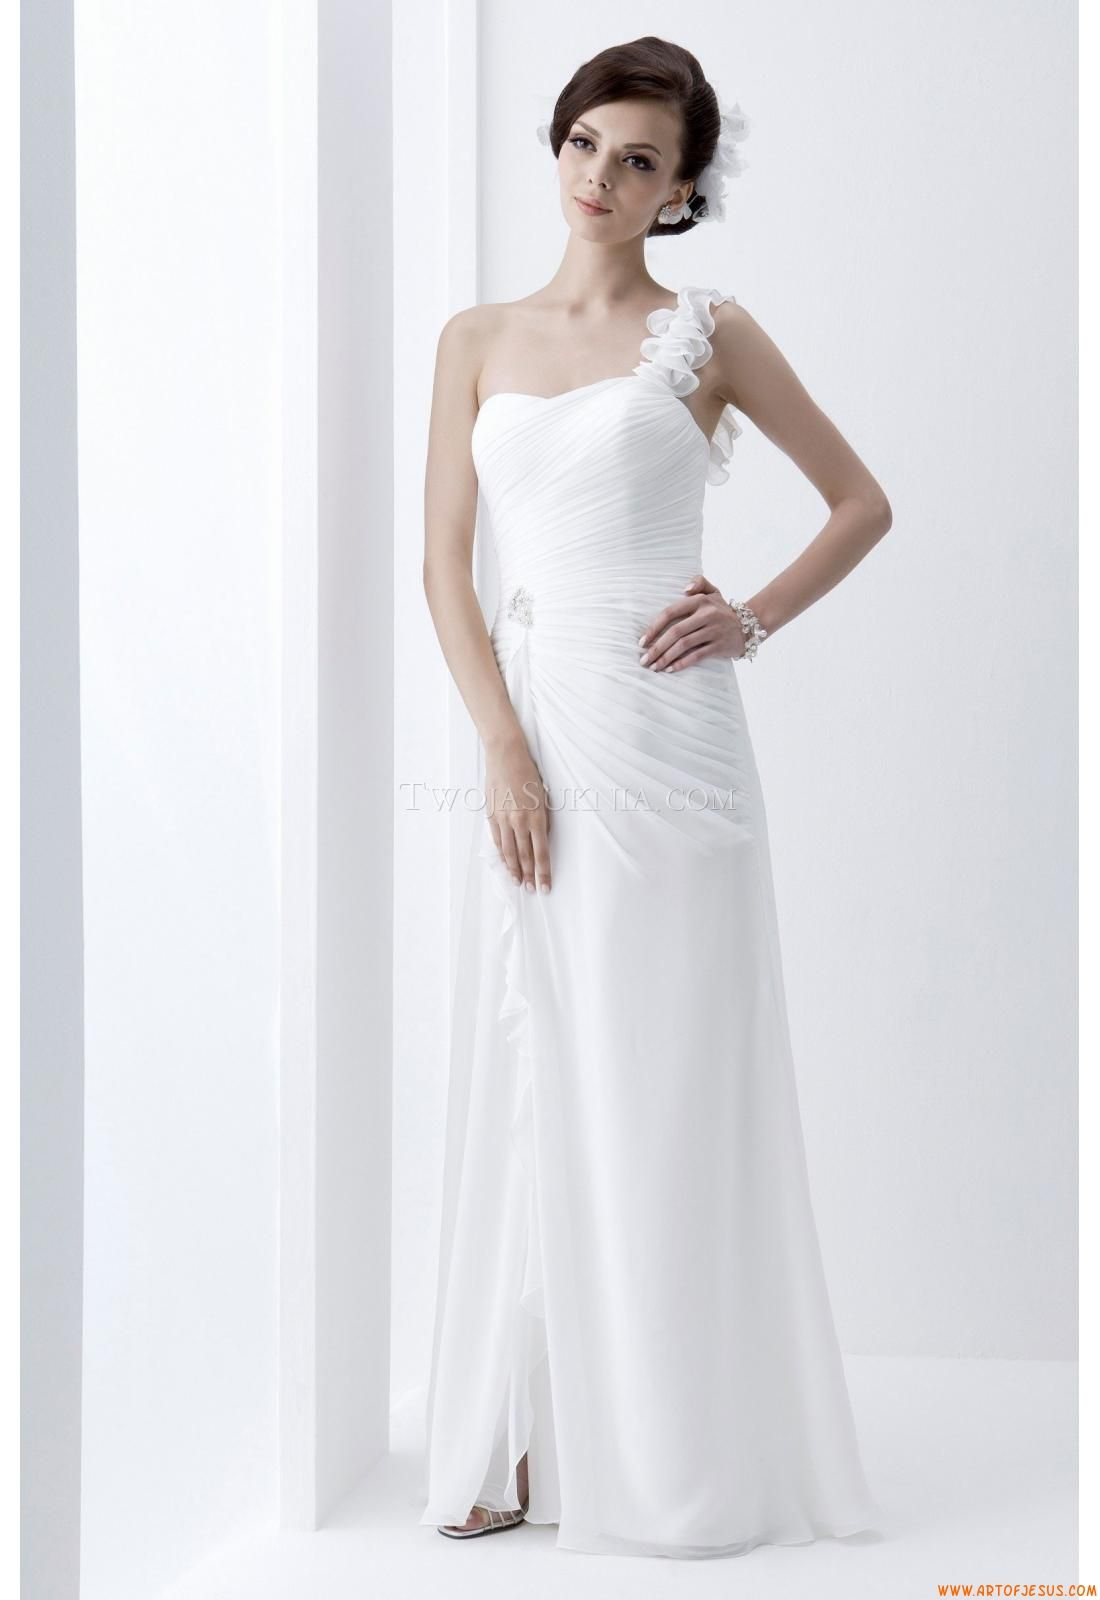 Wedding Dress Venus VN6769 Venus Informal 2013 | wedding dresses ...